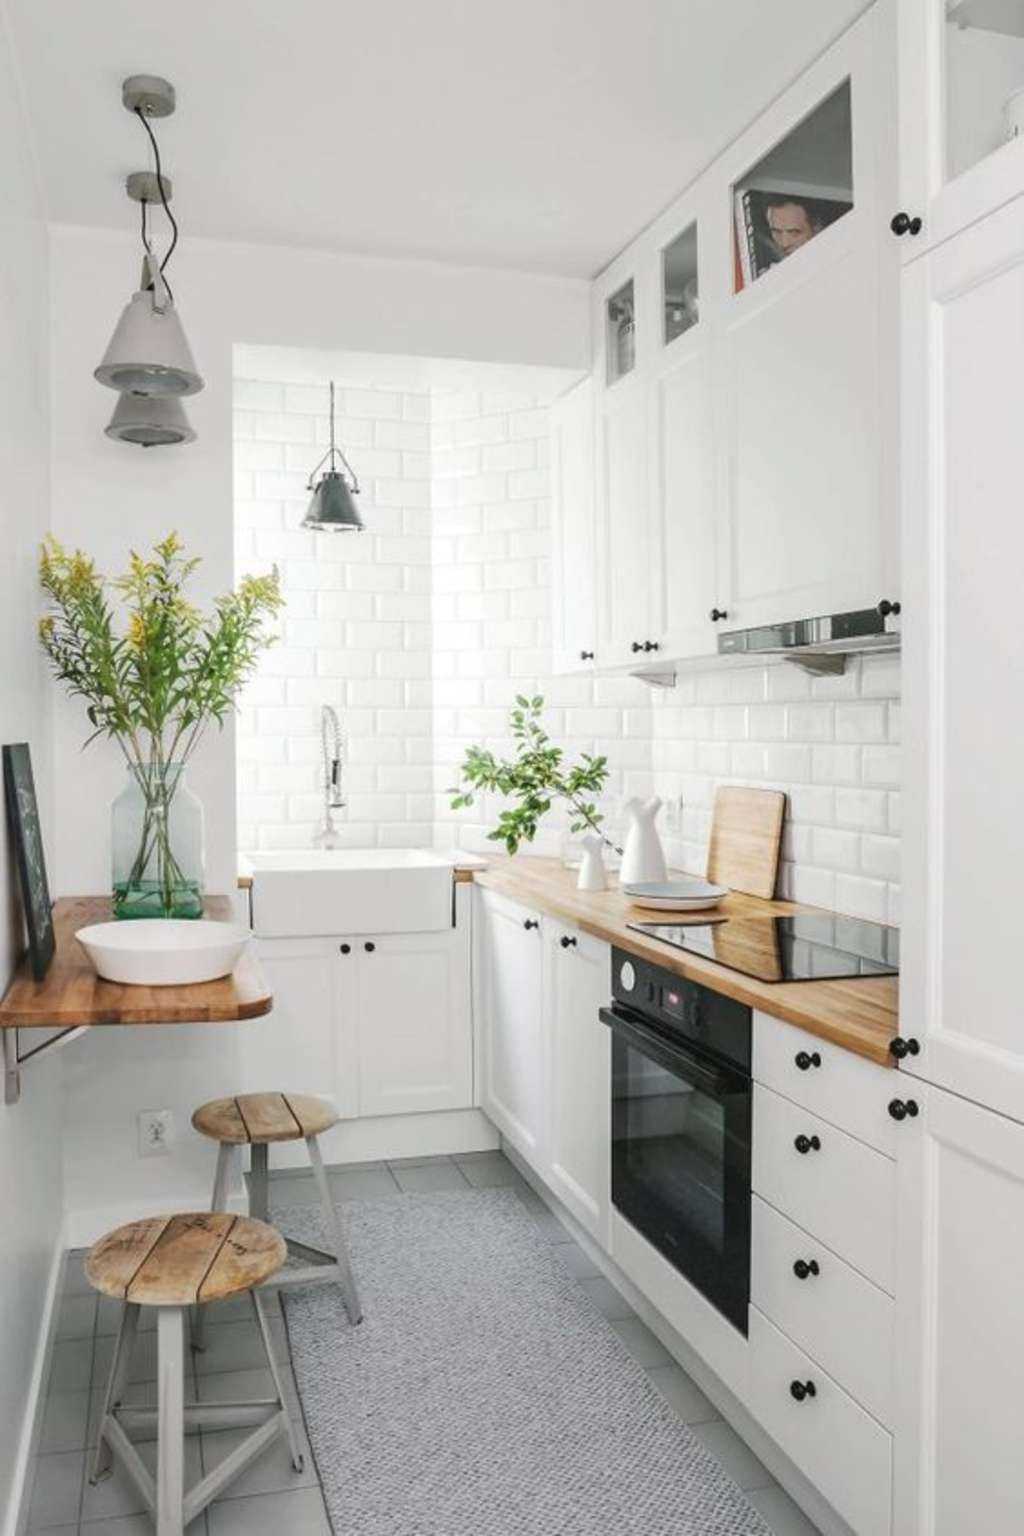 10 Of The Smartest Small Kitchens We Ve Ever Seen Galley Kitchen Design Small Apartment Kitchen Small Space Kitchen